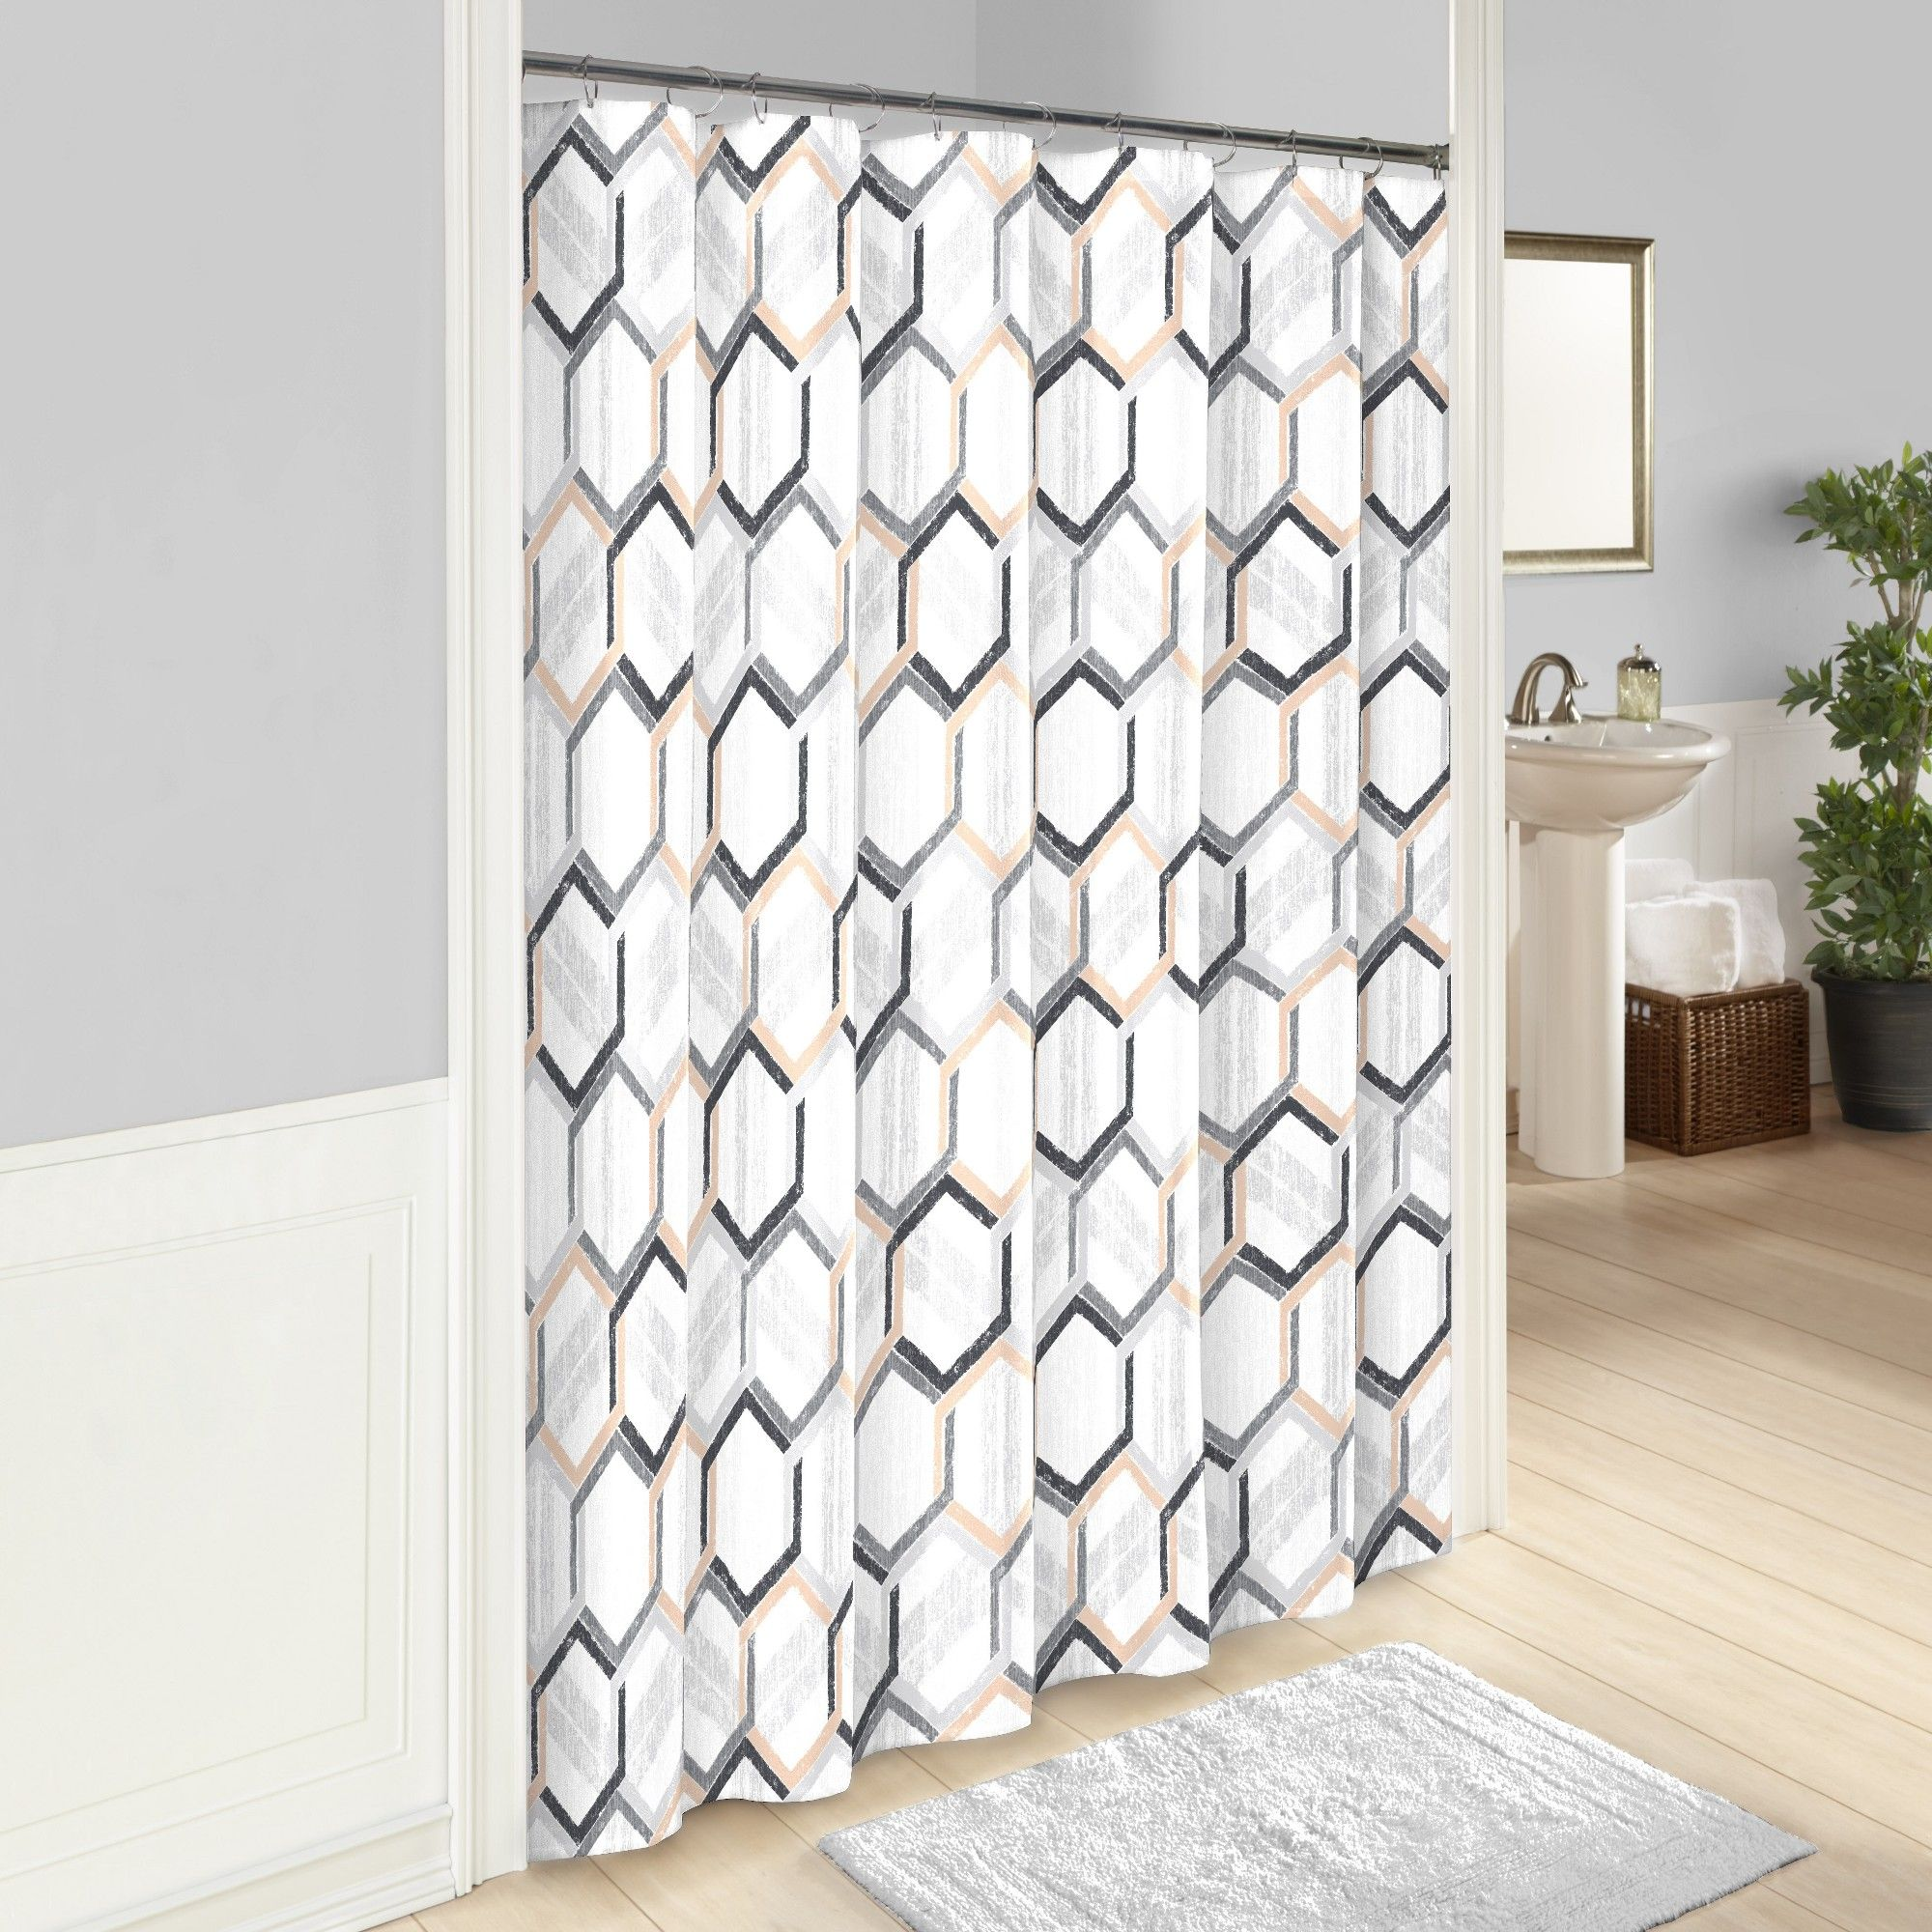 Hexagonal Printed Shower Curtain Gray Vue Shower Curtains